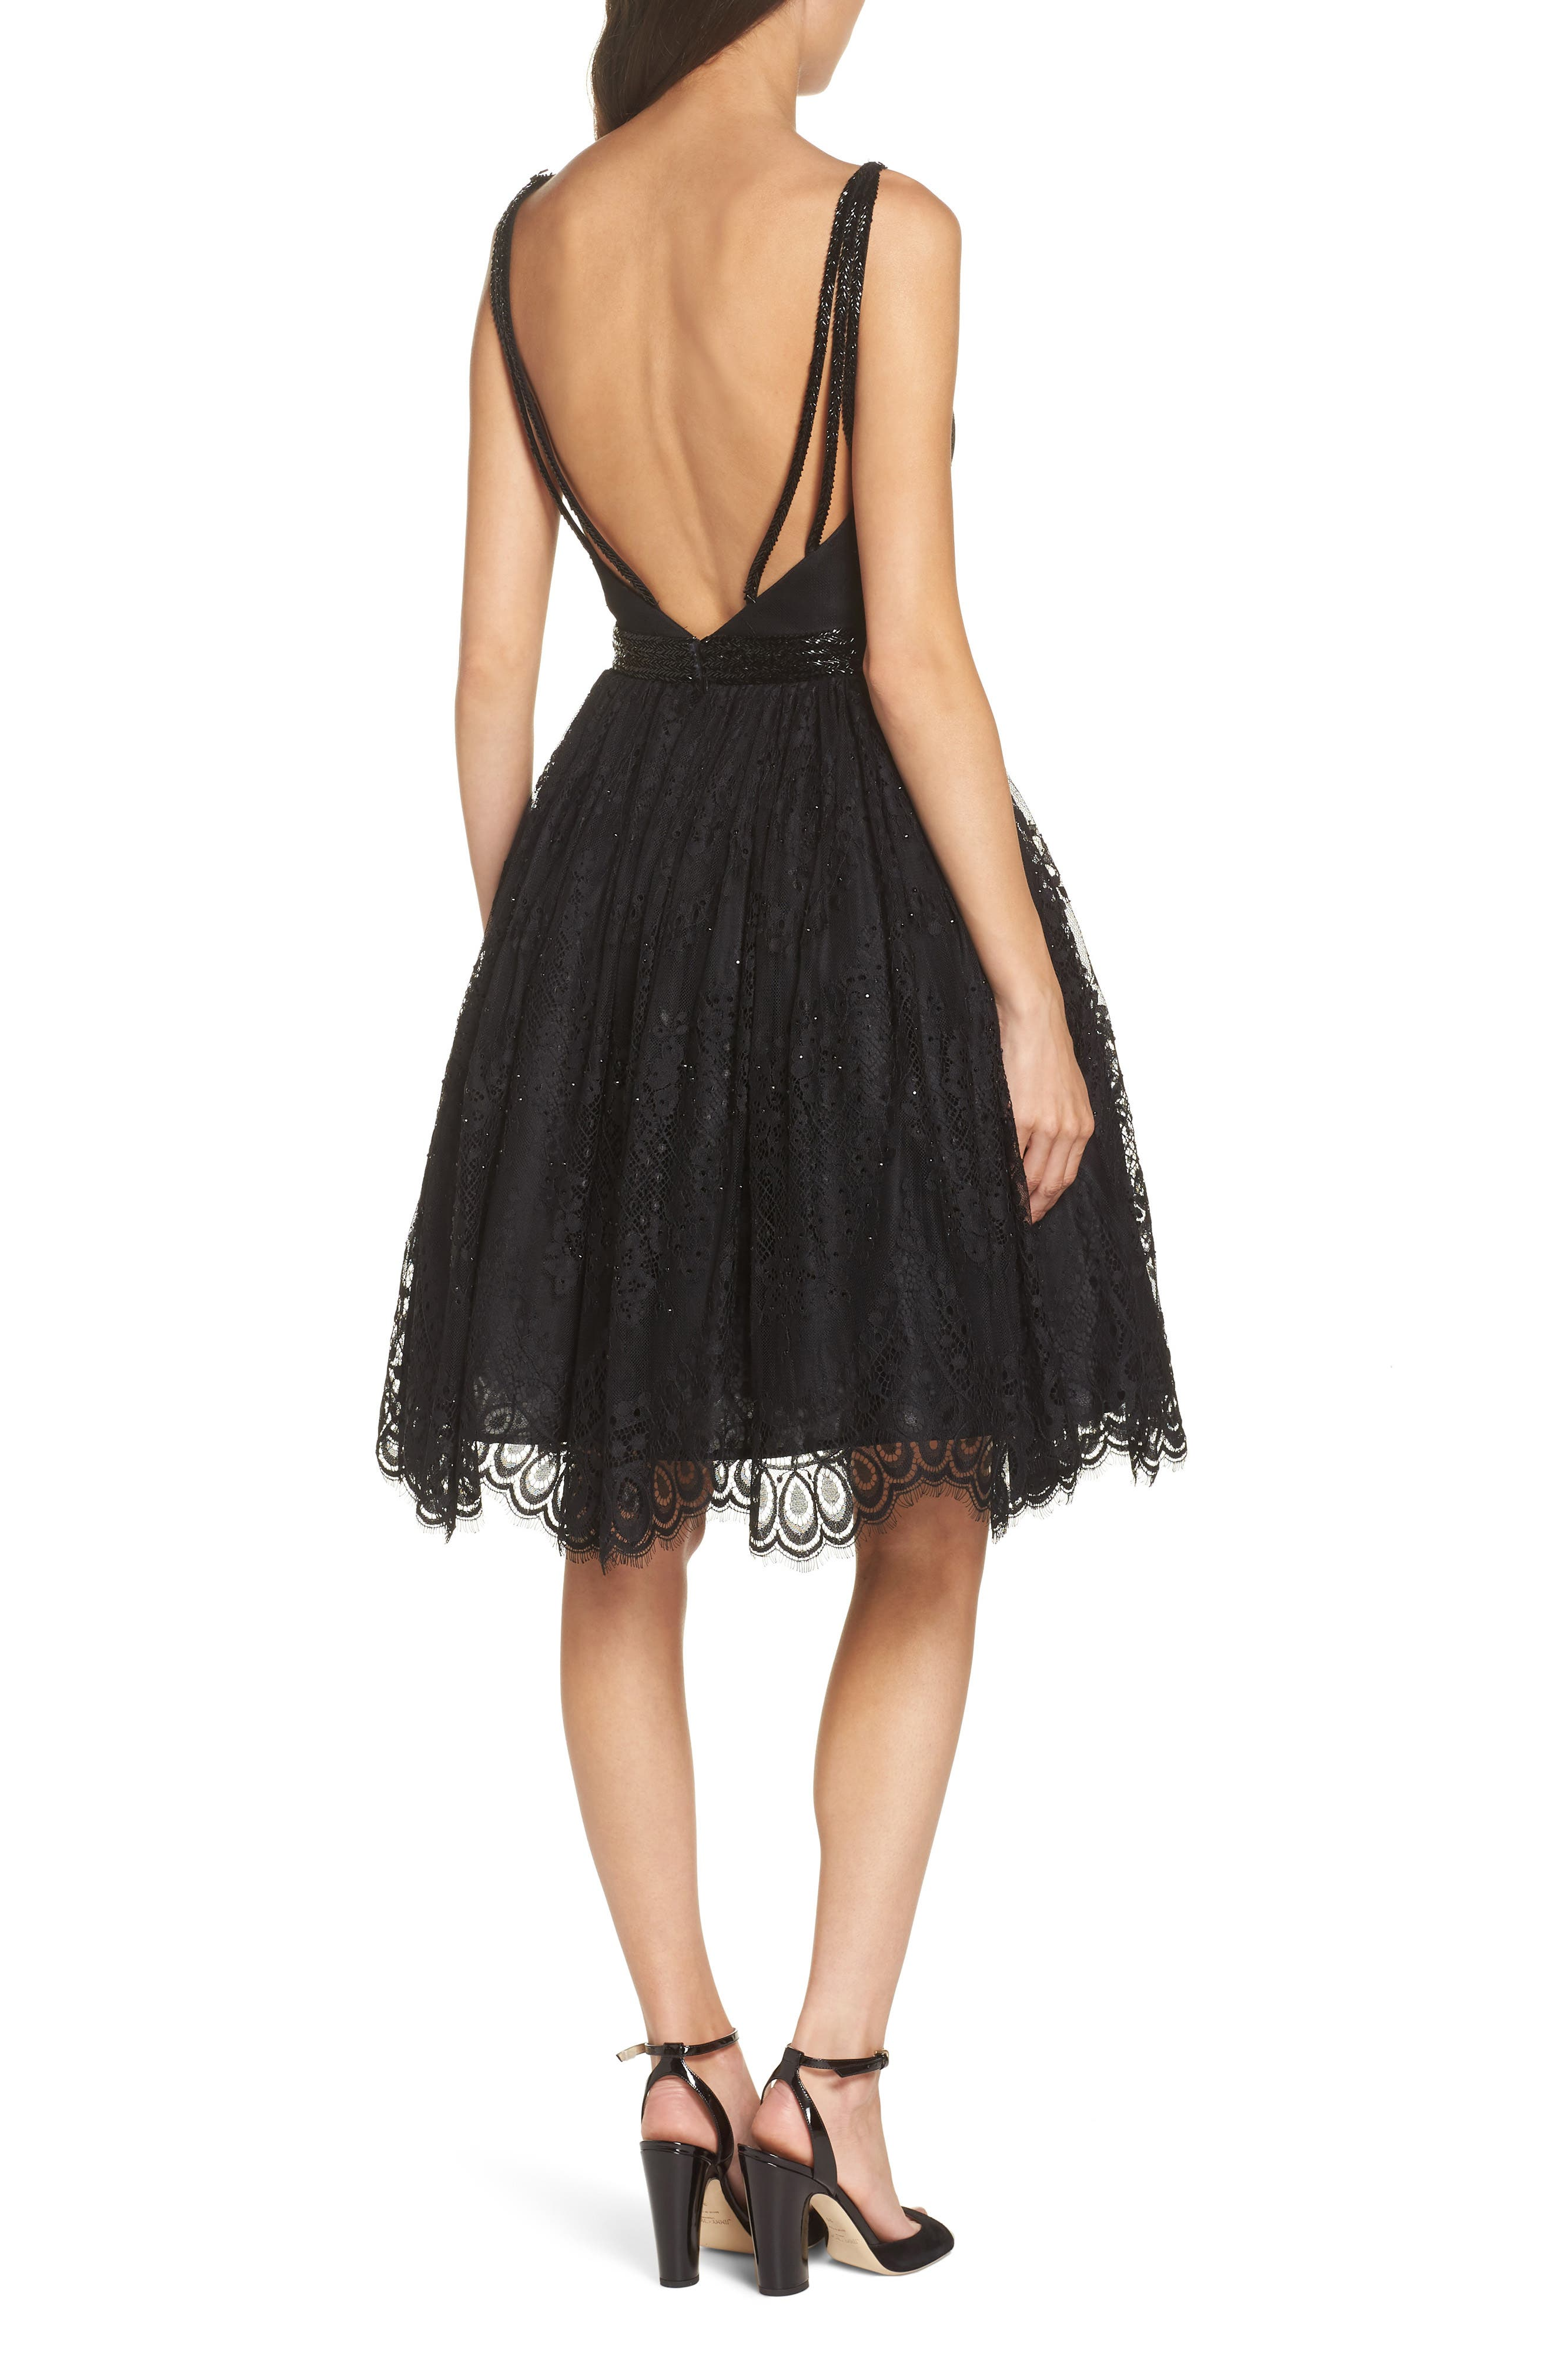 MAC DUGGAL, Sweetheart Neck Lace Party Dress, Alternate thumbnail 2, color, BLACK